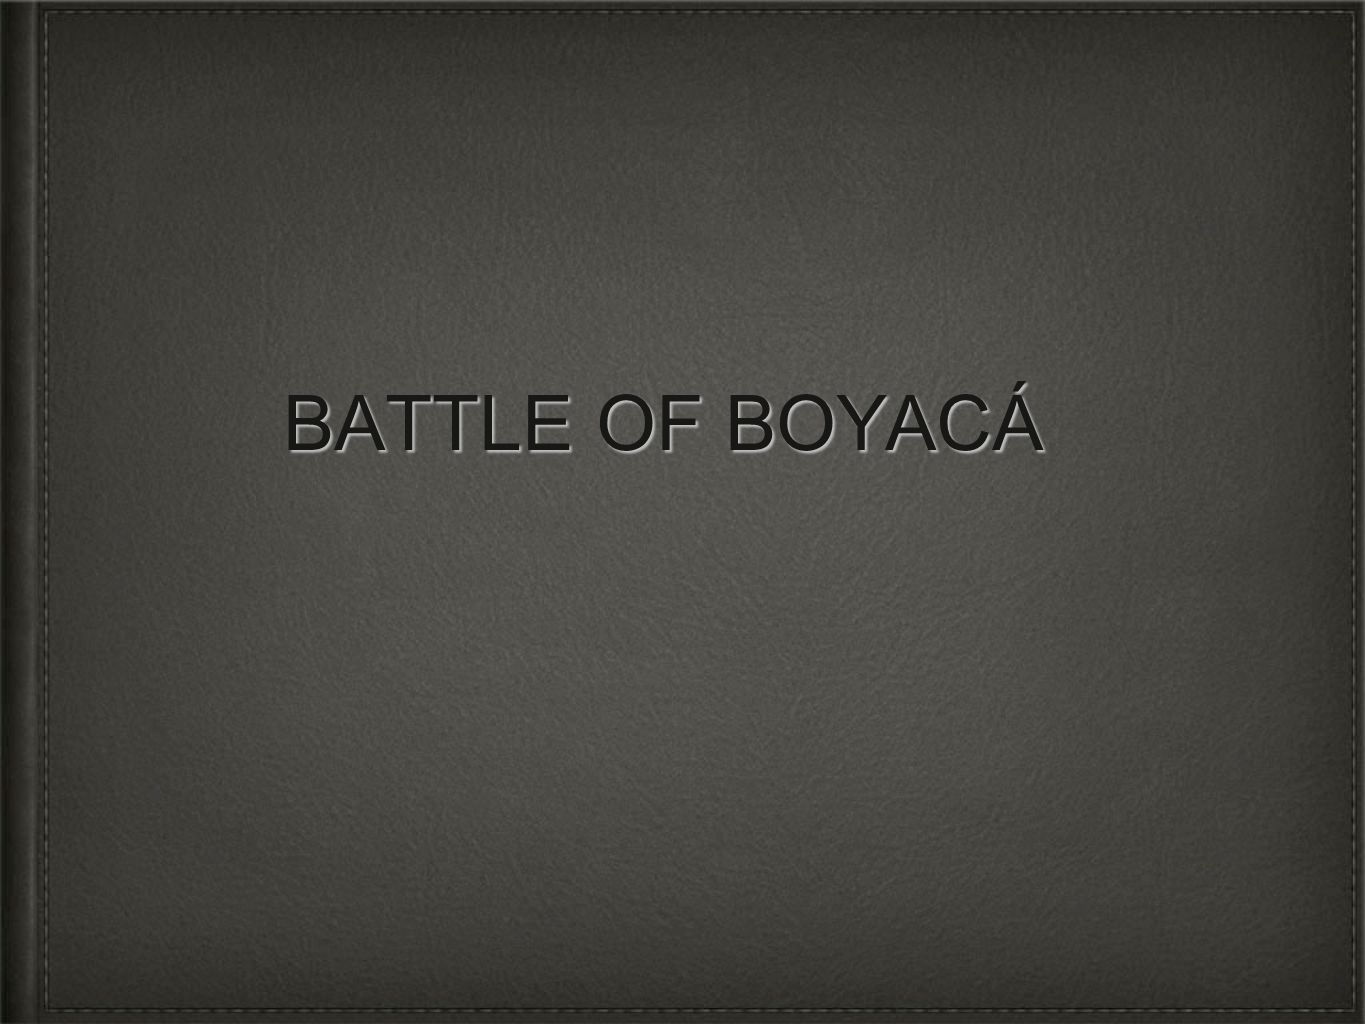 BATTLE OF BOYACÁ